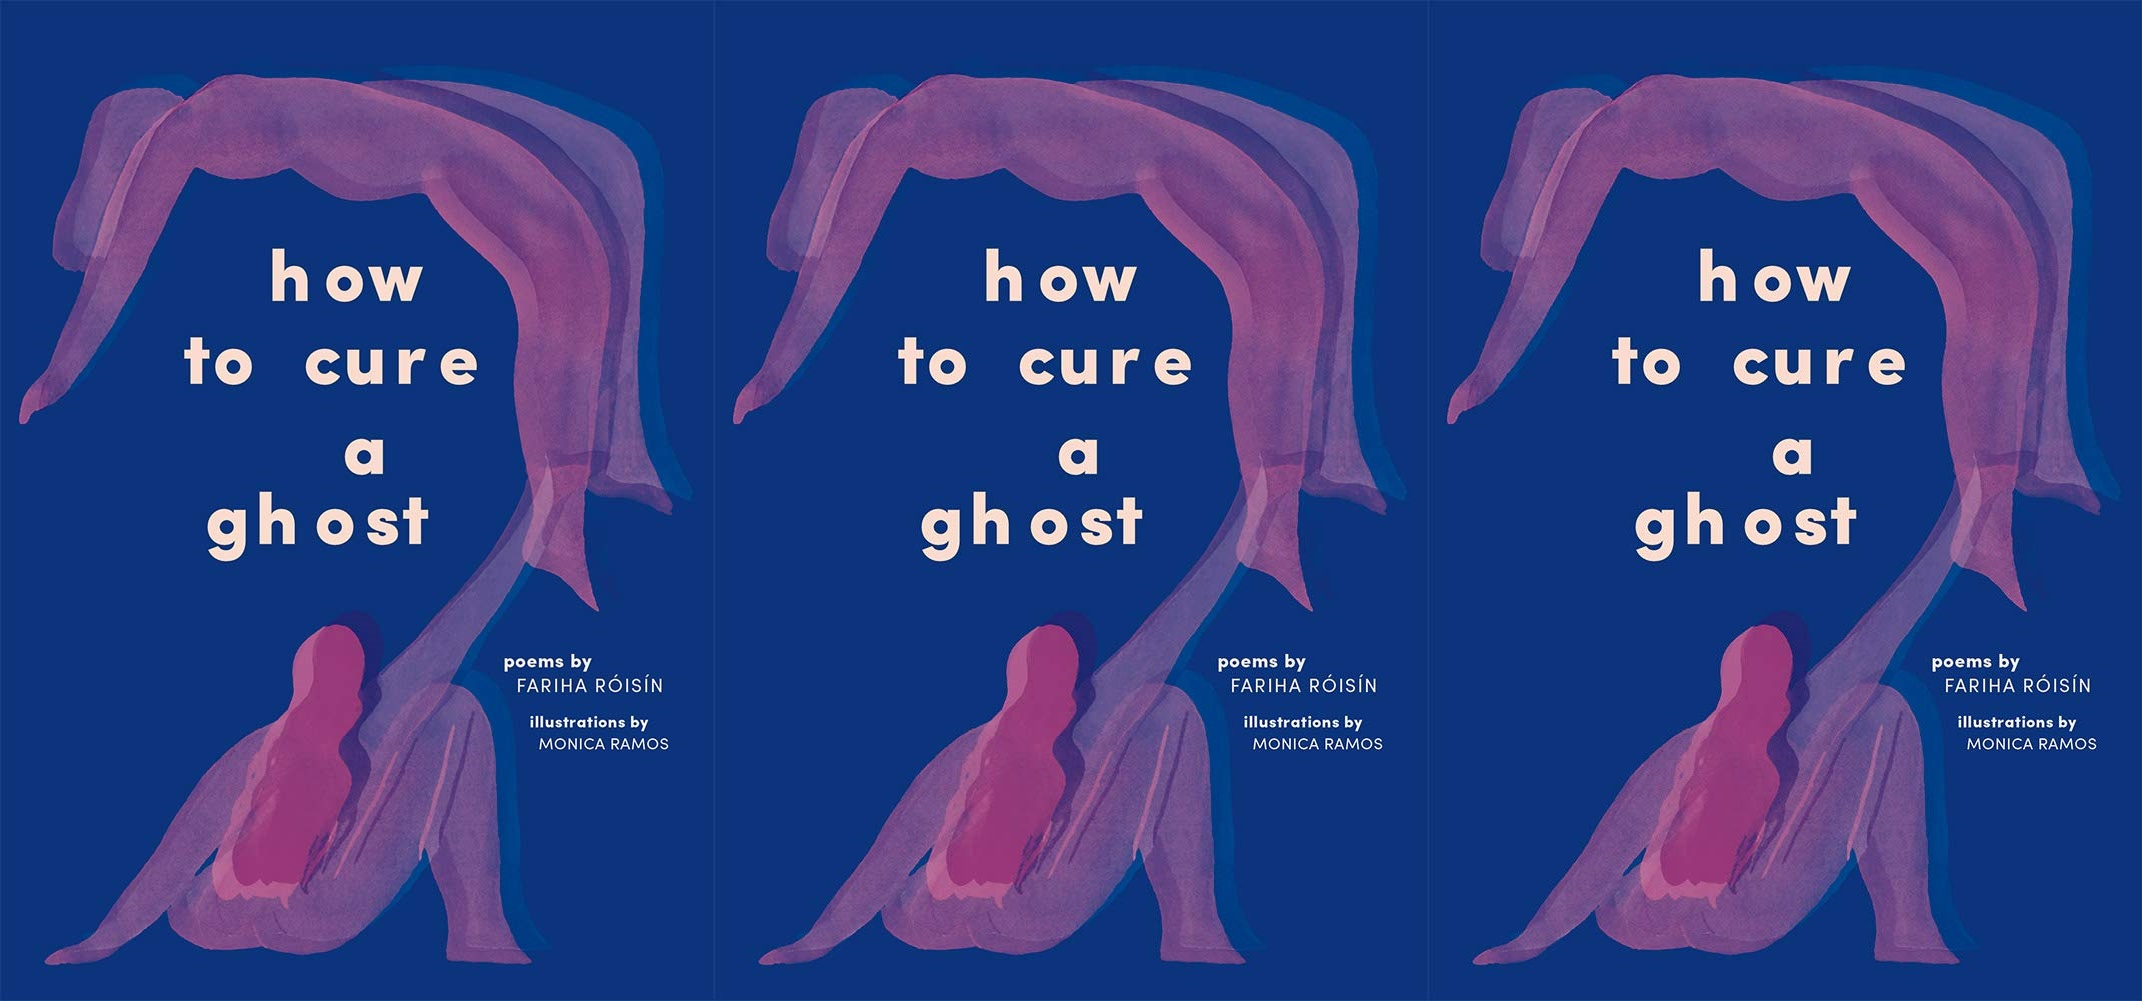 upcoming poetry collections, how to cure a ghost by fariha roisin, books